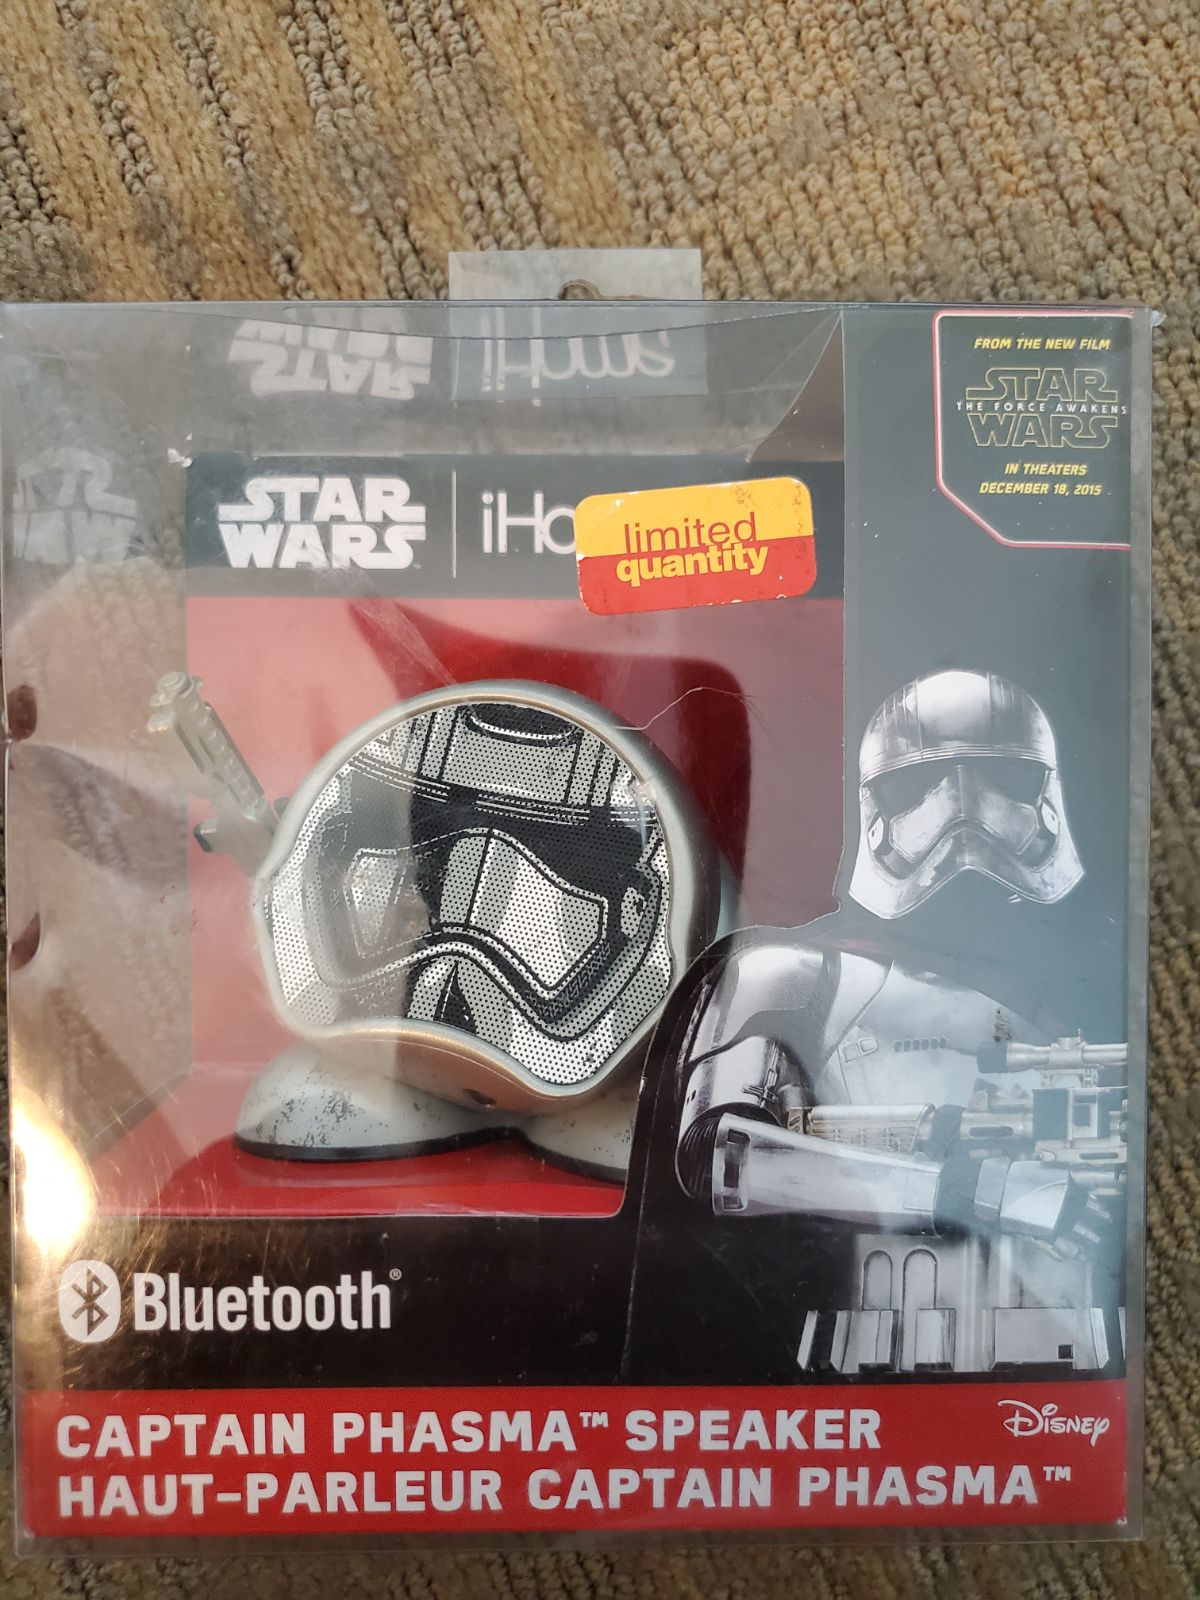 STAR WARS BLUETOOTH SPEAKER.